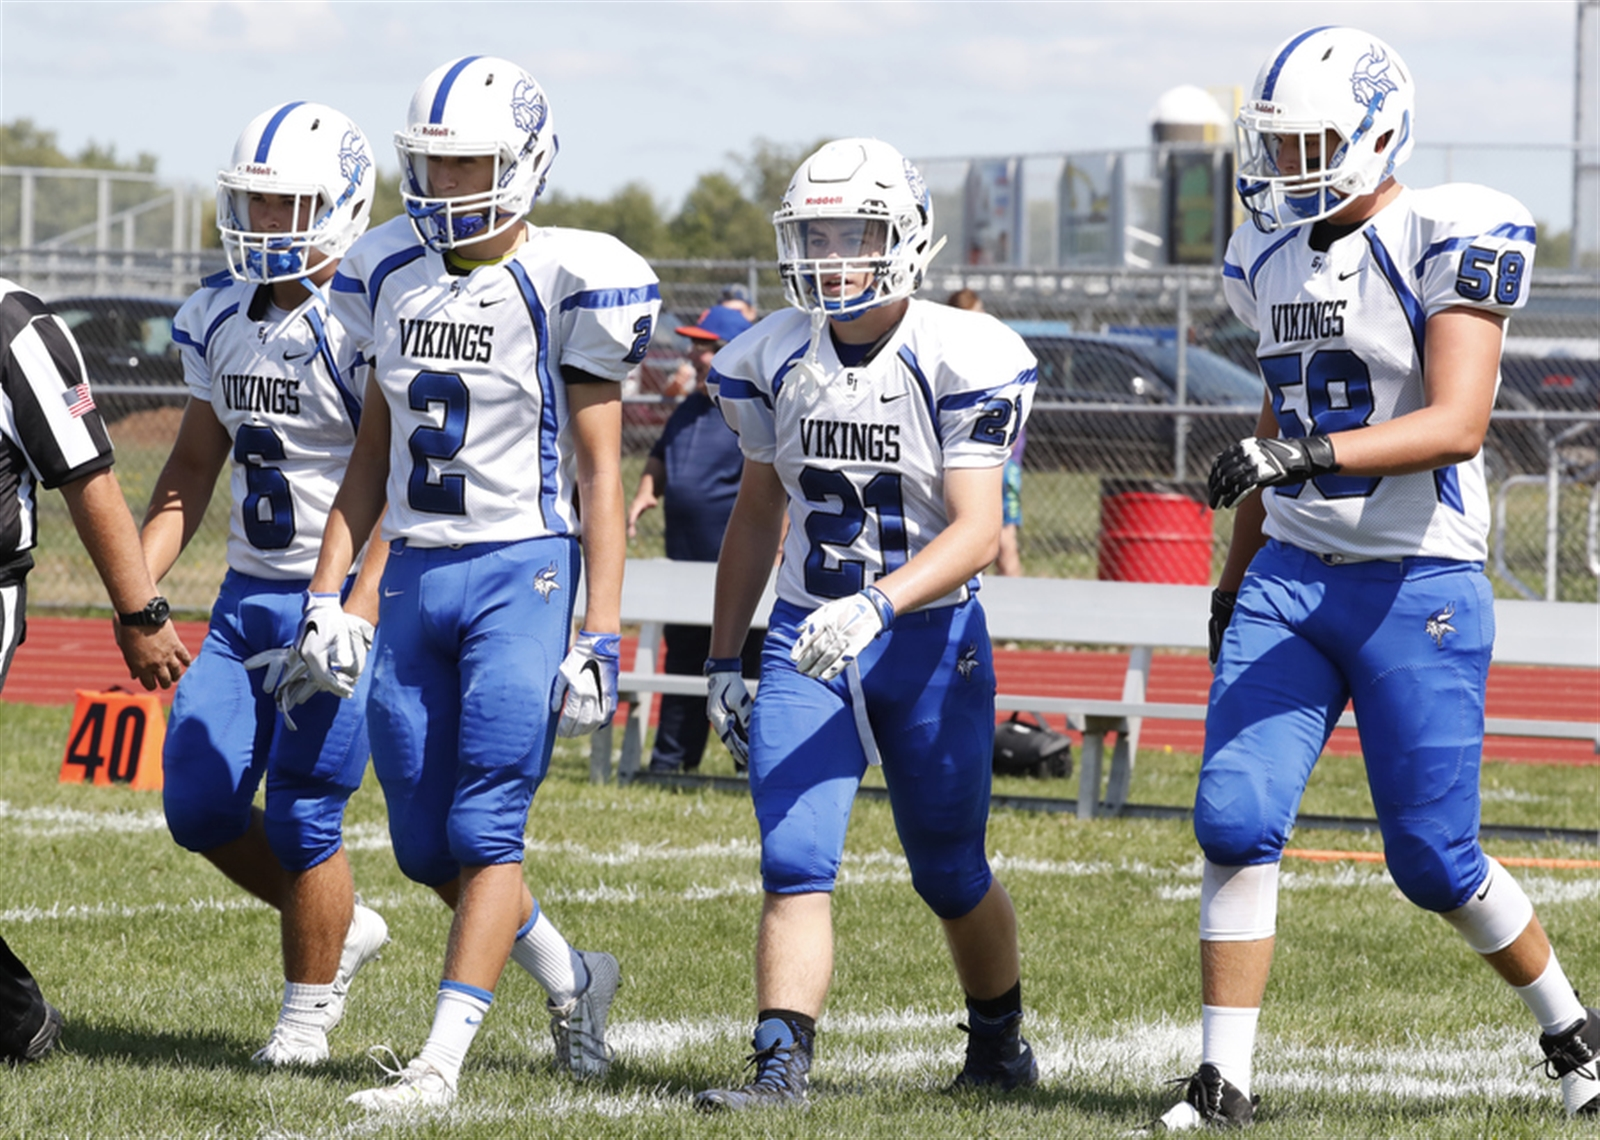 Grand Island captains make their way to the coin toss prior to playing Niagara Wheatfield.